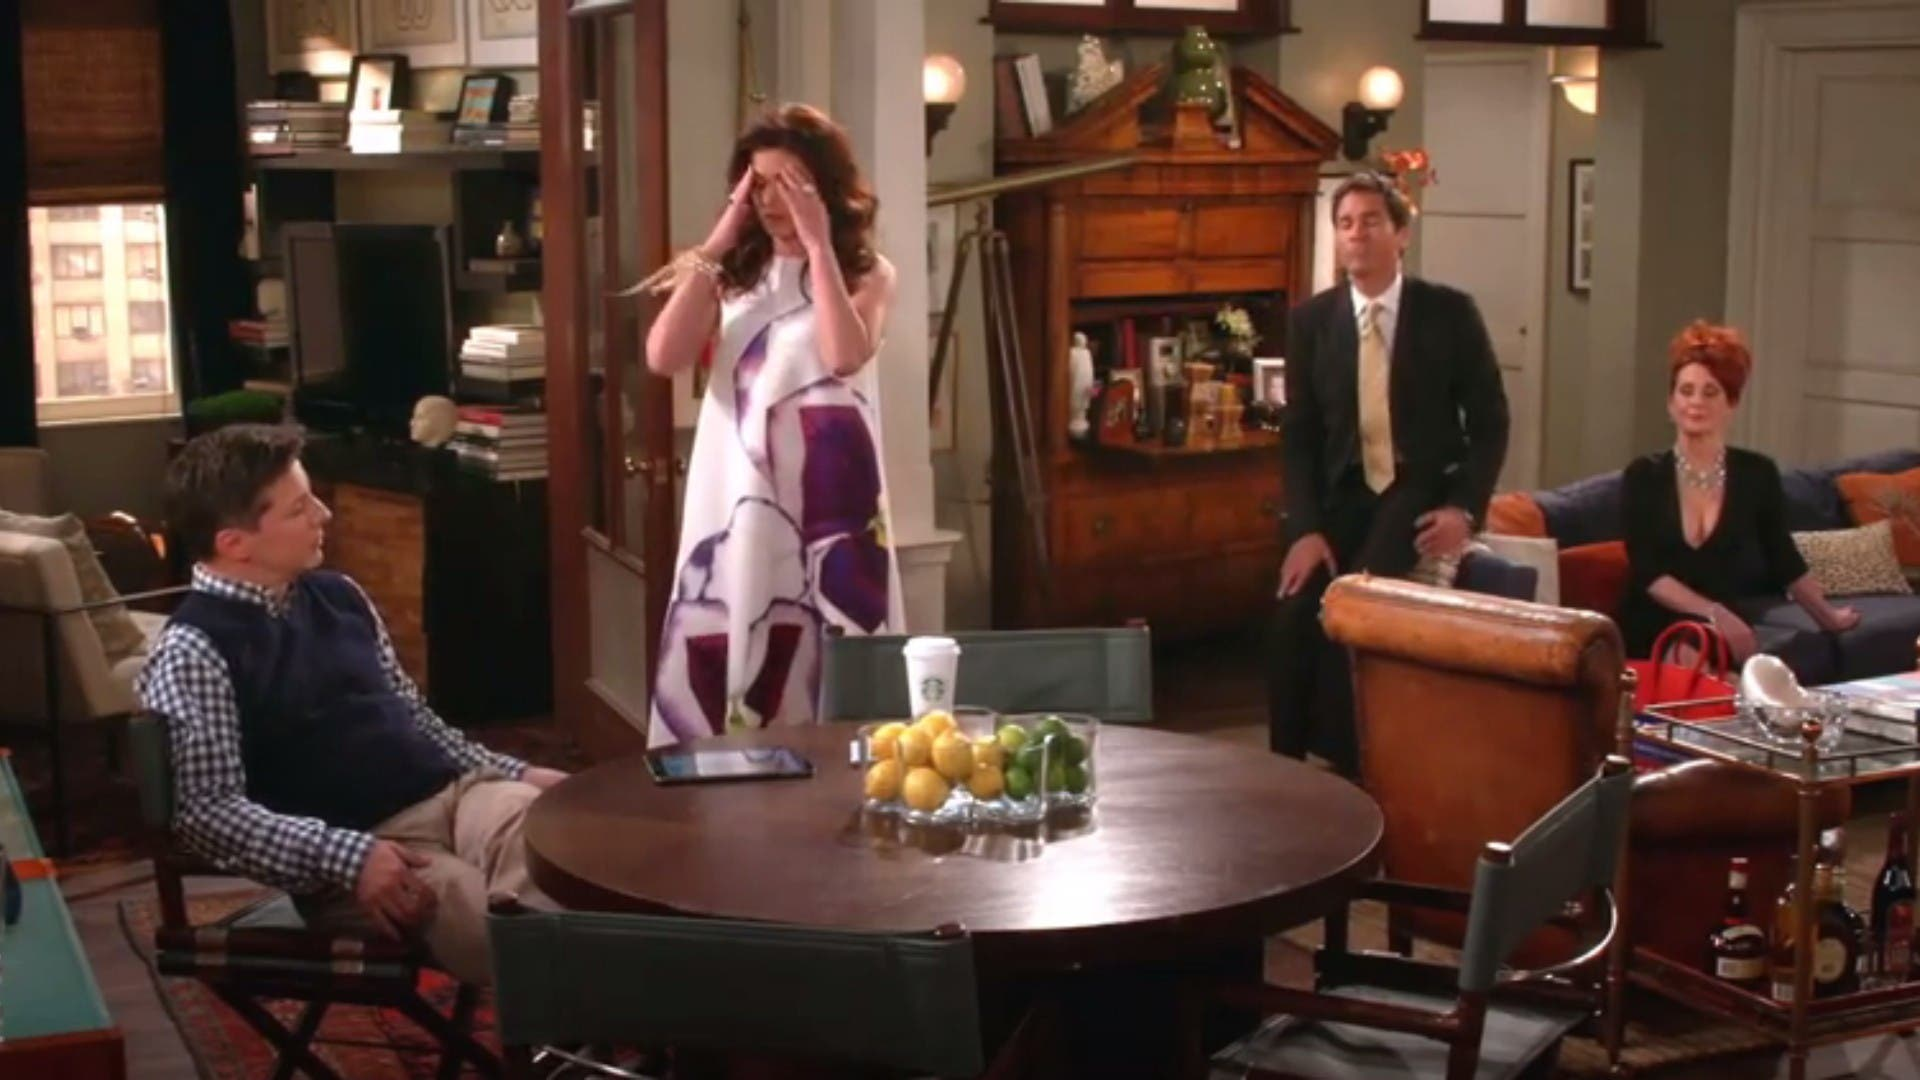 watch-theres-a-new-mini-episode-of-will-grace